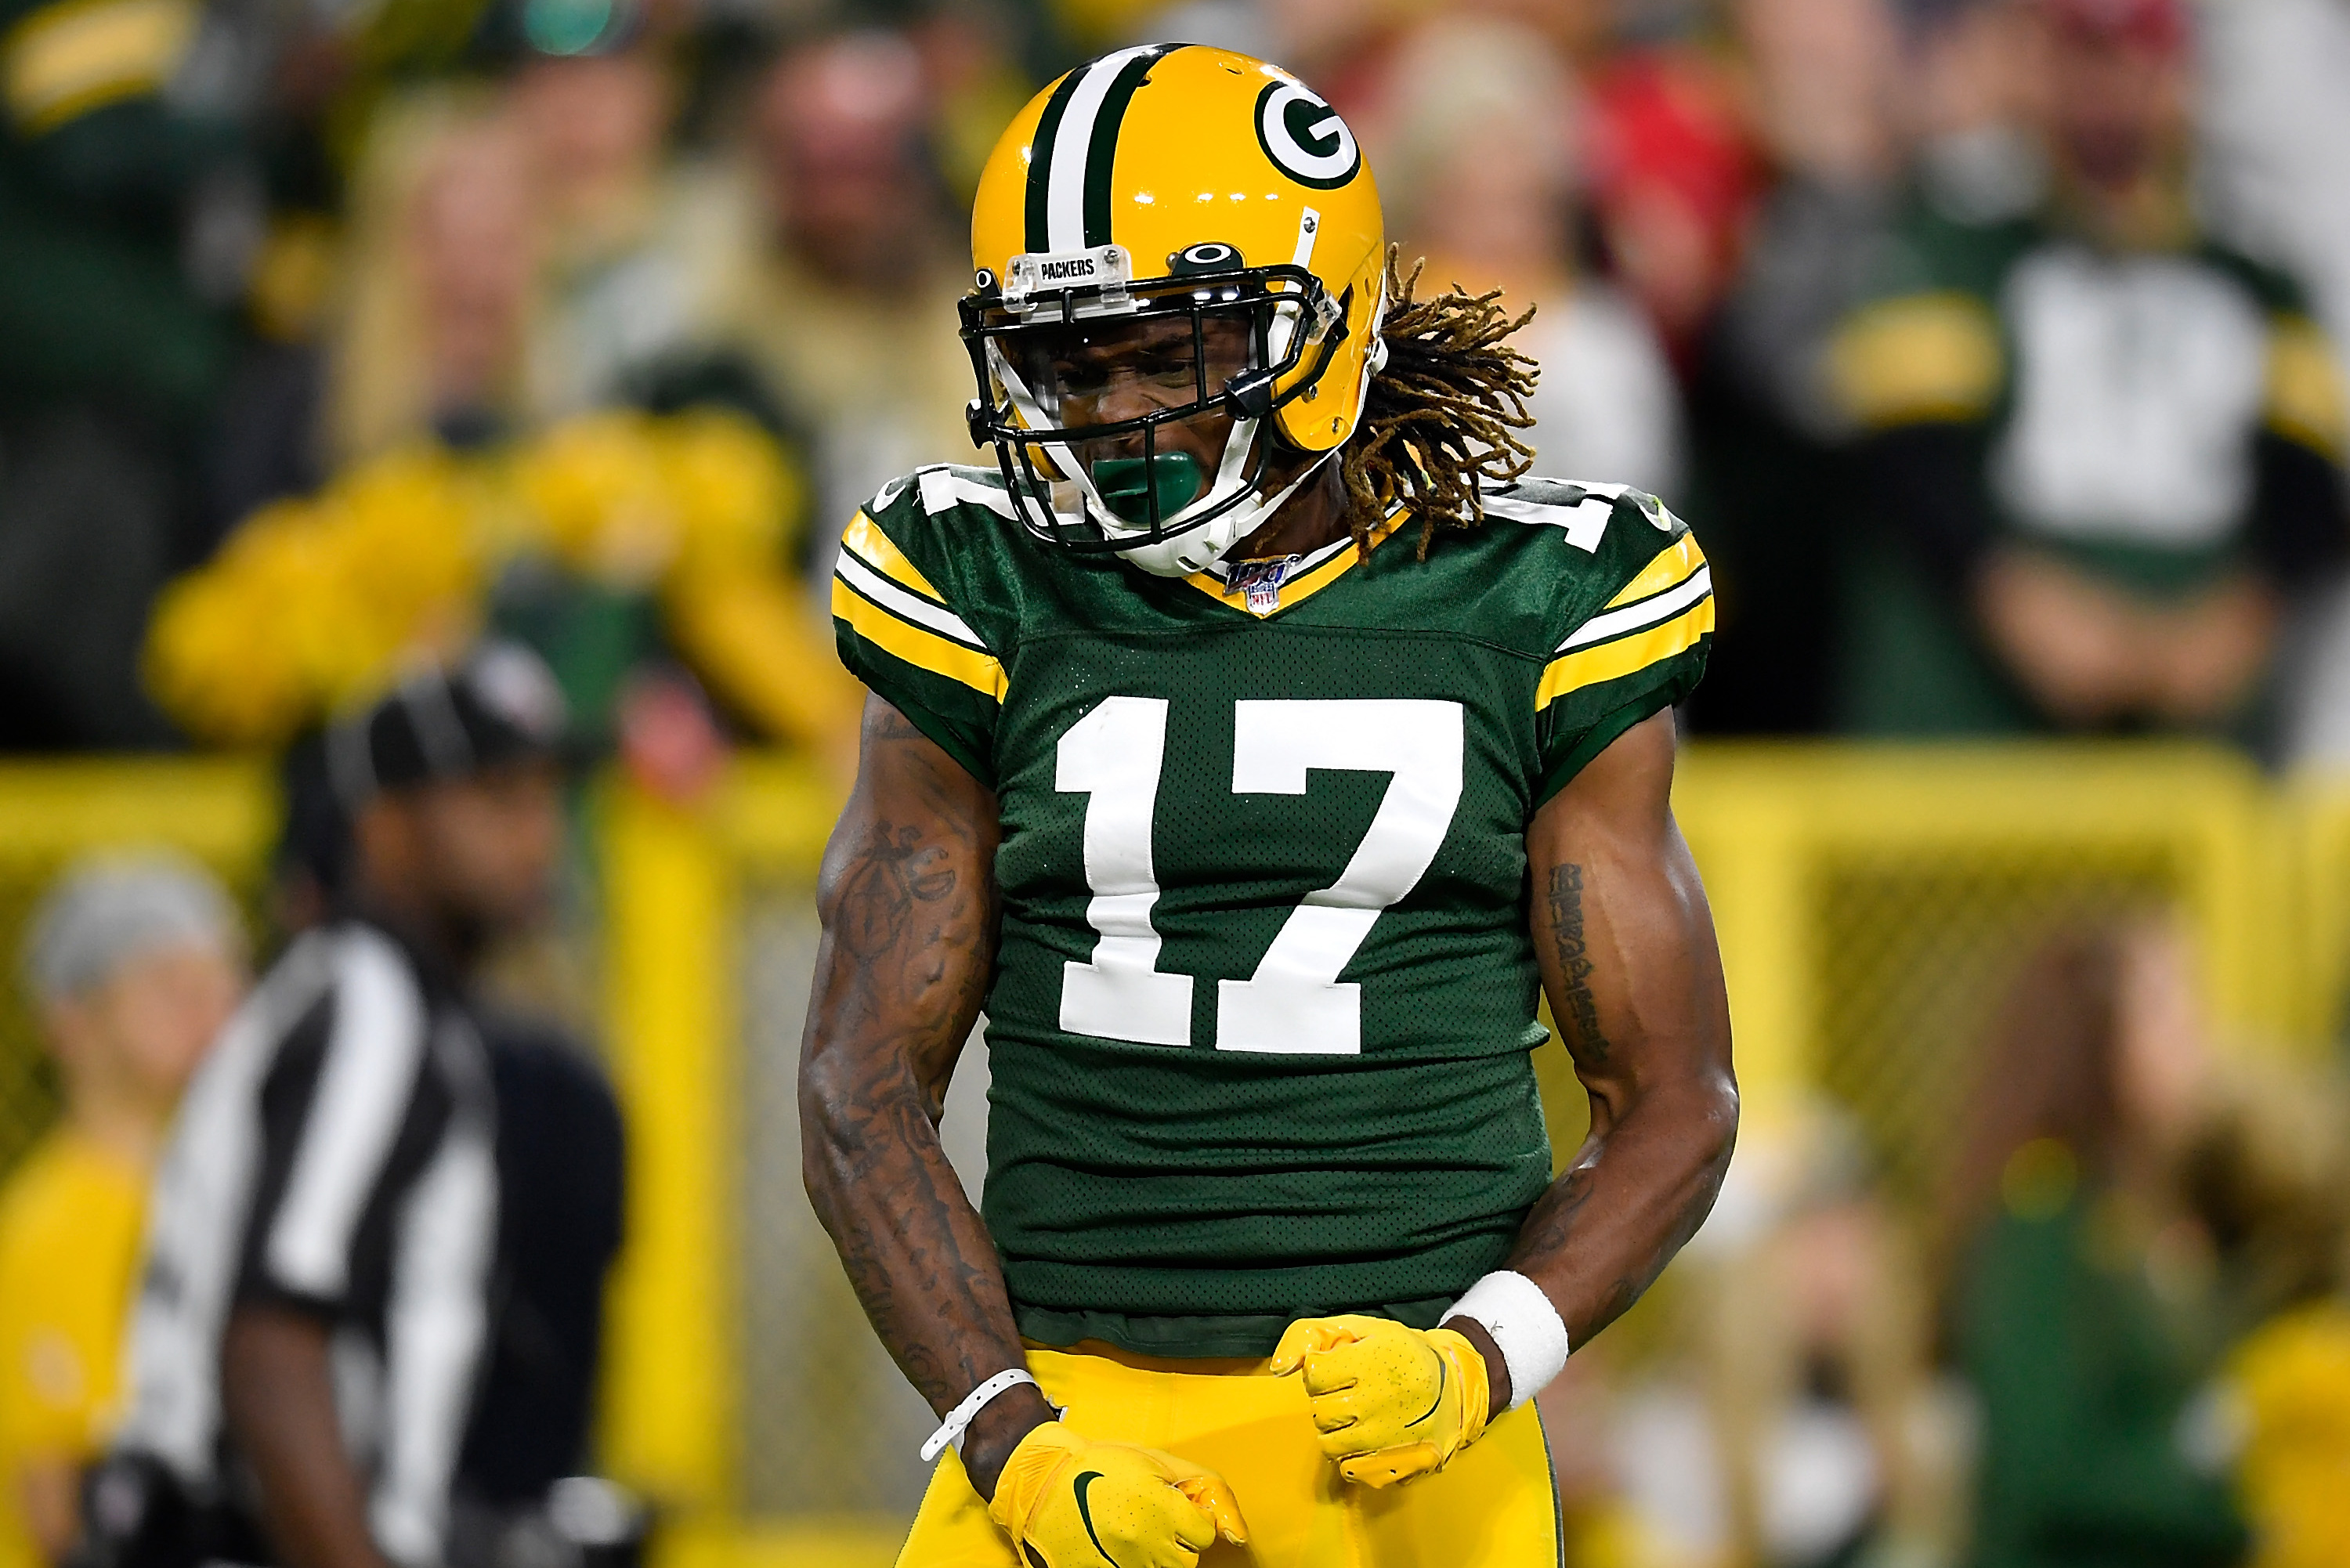 Packers Davante Adams Calls Turf Toe Injury Major No Timetable For Return Bleacher Report Latest News Videos And Highlights